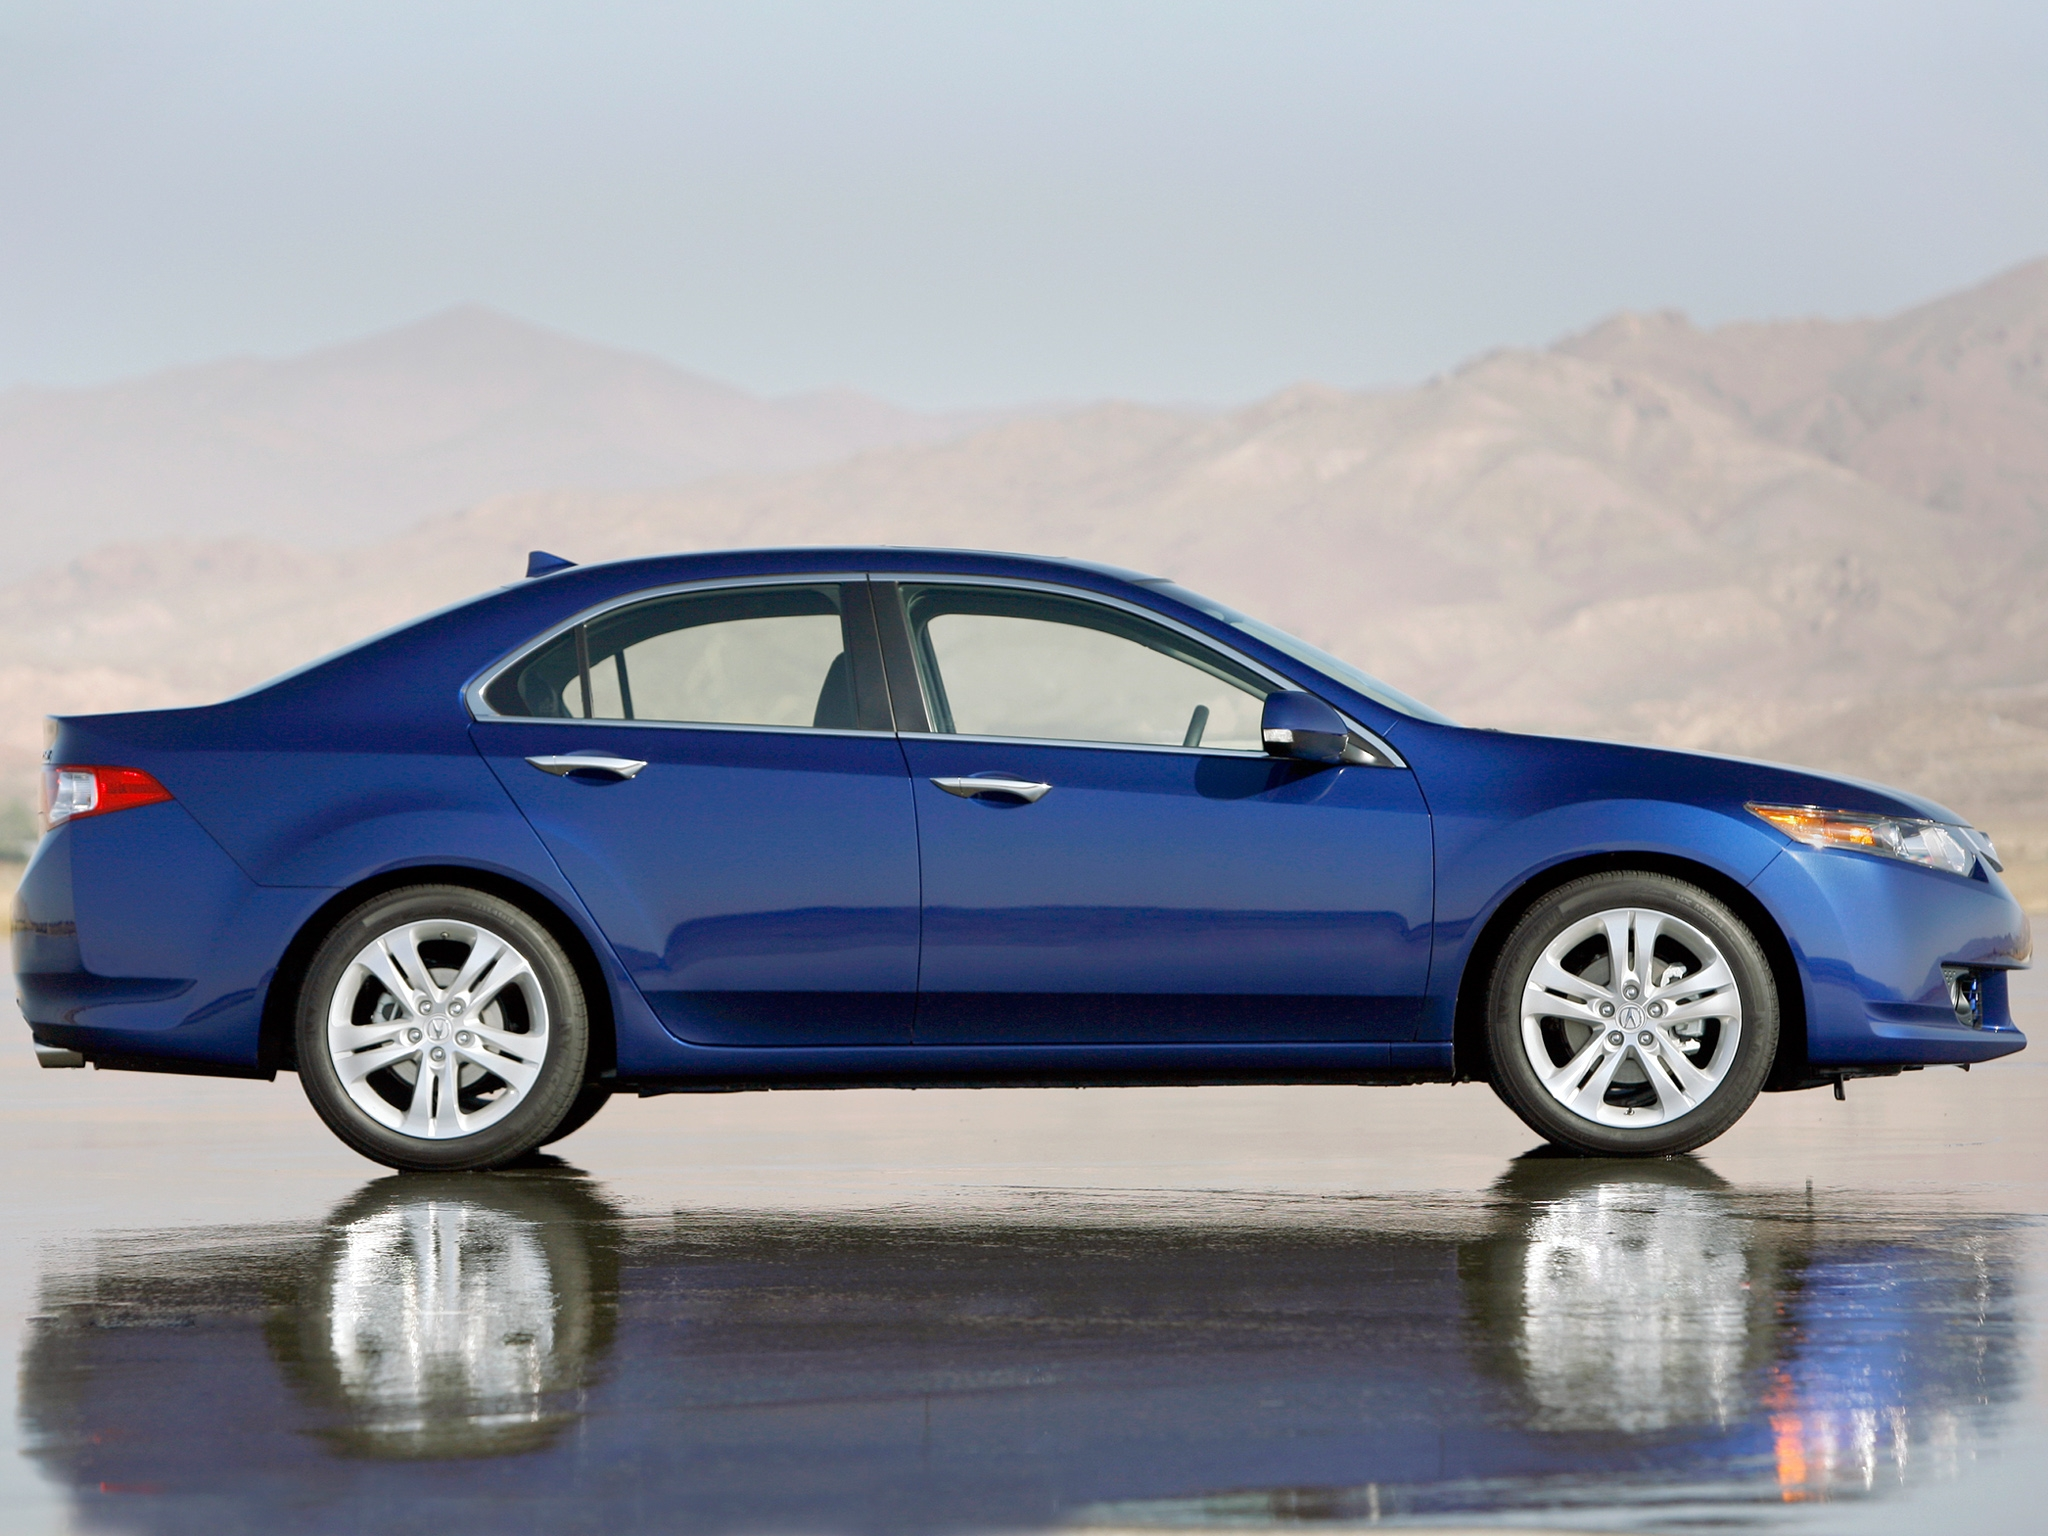 99299 download wallpaper Cars, Acura, Tsx, V6, Side View, Style, Auto, Akura, Reflection, Wet Asphalt, Mountains screensavers and pictures for free